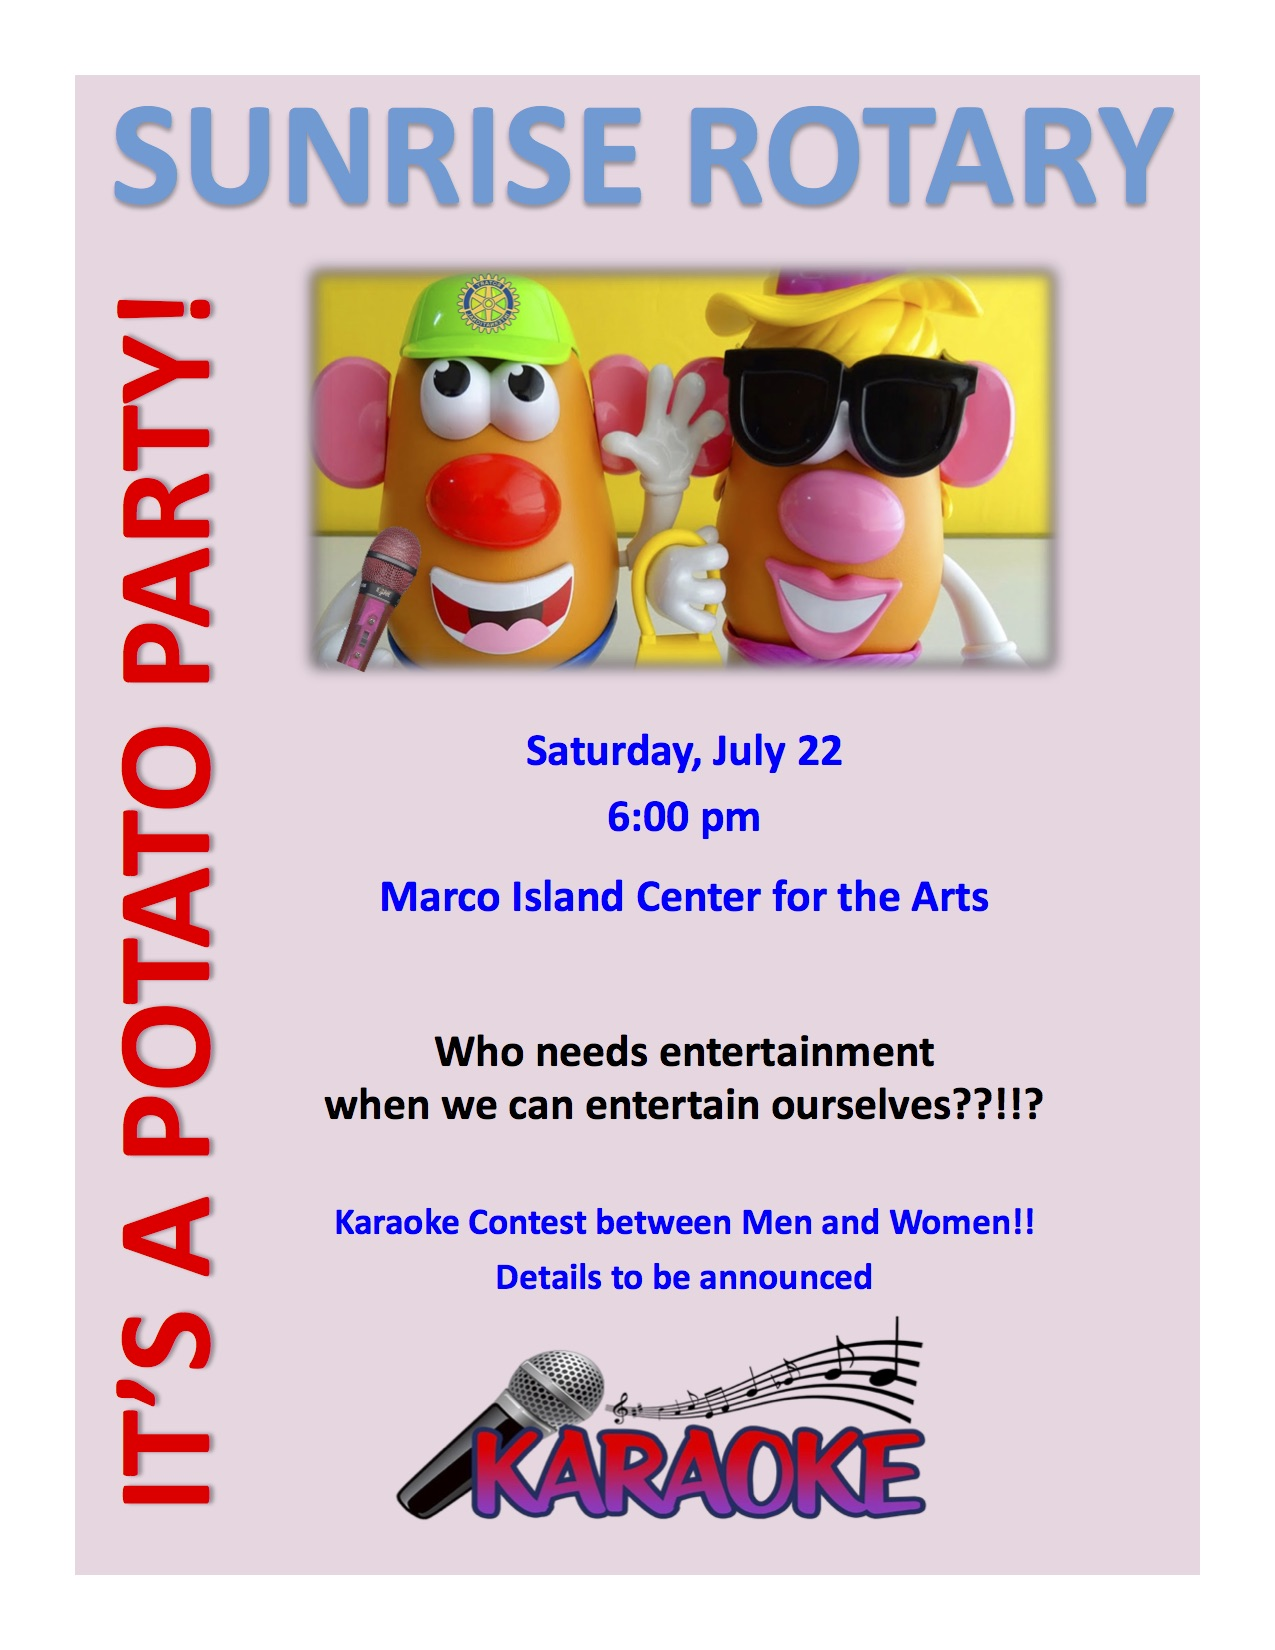 Sunrise Rotary Social Potato Party and Karaoke